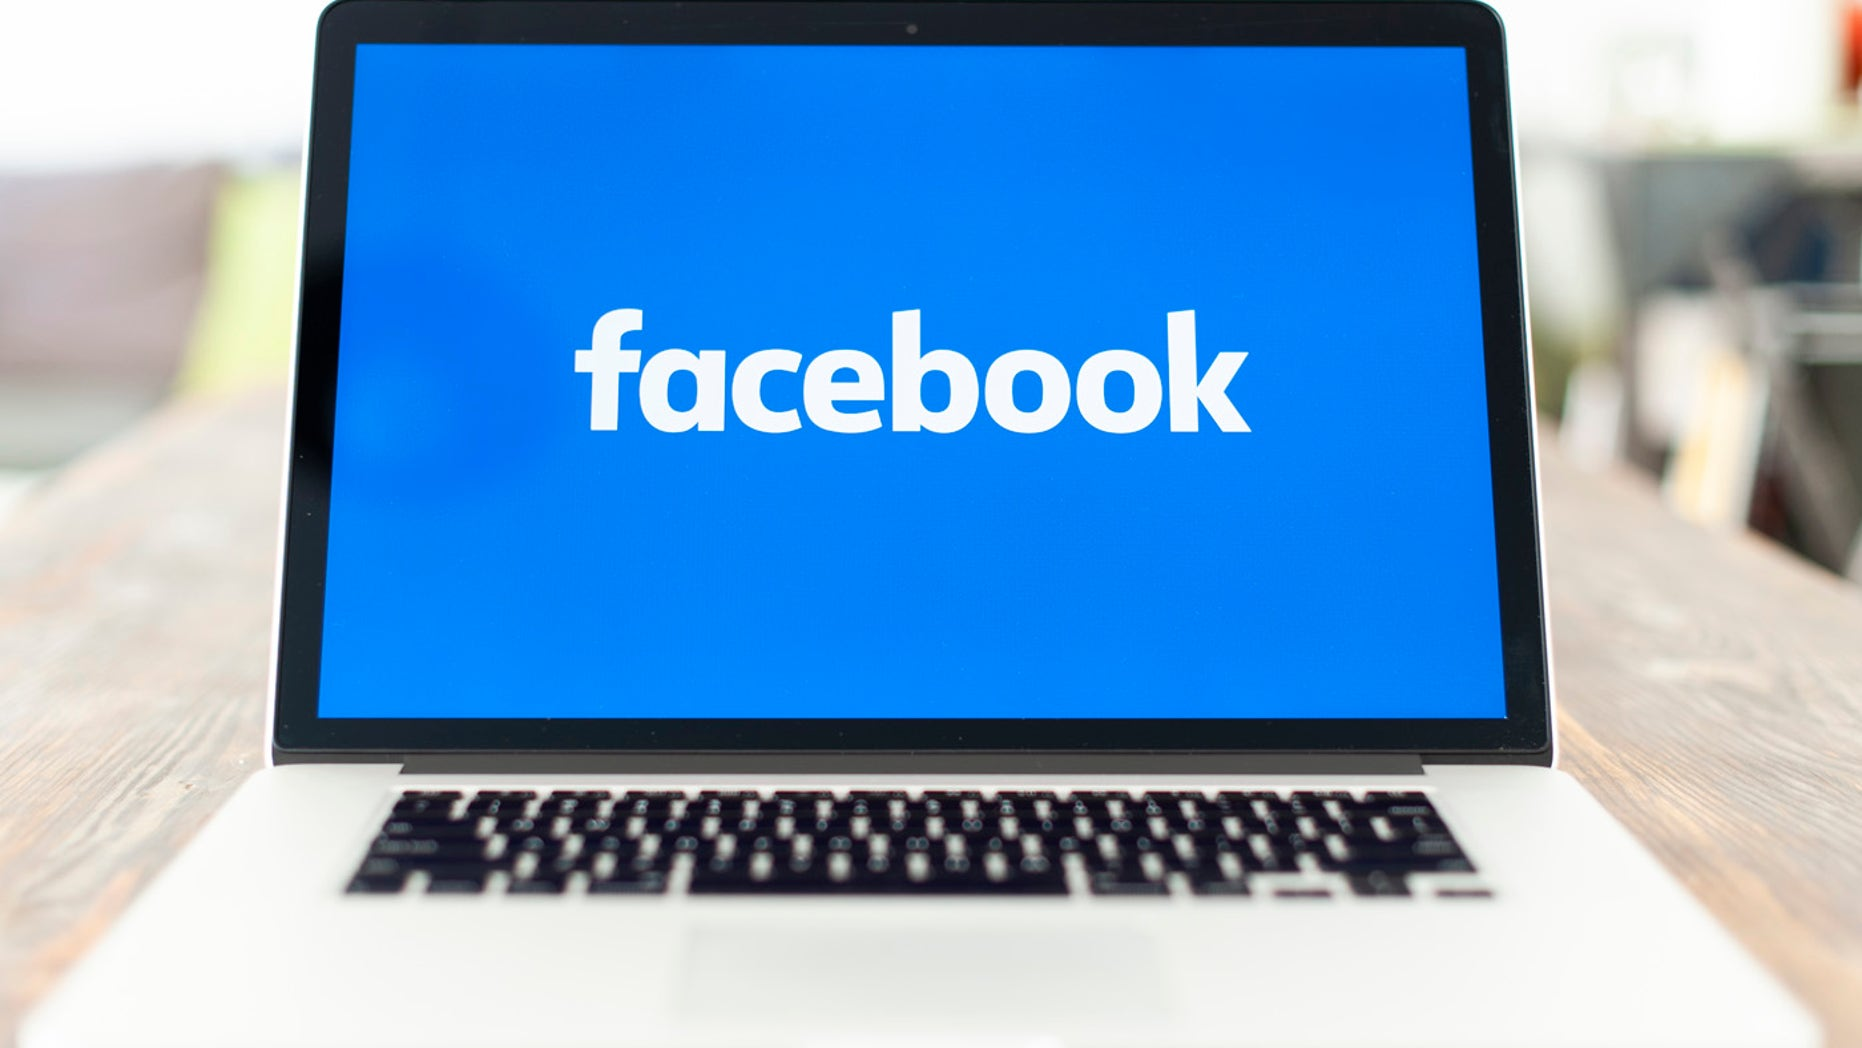 Facebook, Instagram and Whatsapp were partially down for some users around a universe Wednesday afternoon, and a intrusion lasted for several hours, according to a website where users can news their problems with other sites and apps. (Photo by Jaap Arriens/NurPhoto around Getty Images)